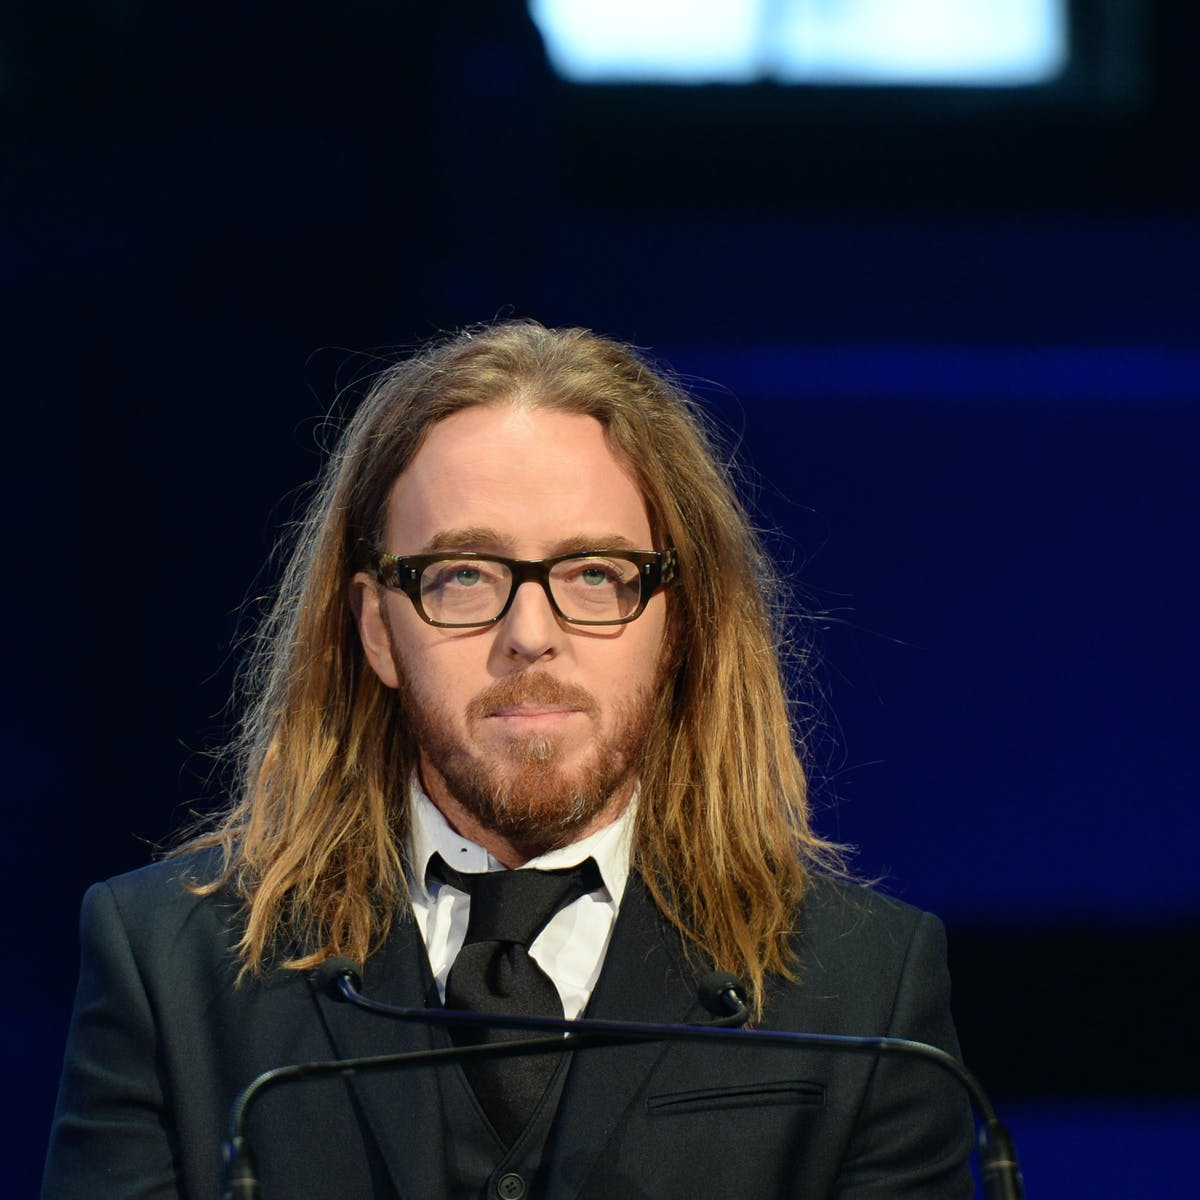 Tim Minchin's Come Home Cardinal Pell is a pitch-perfect protest song